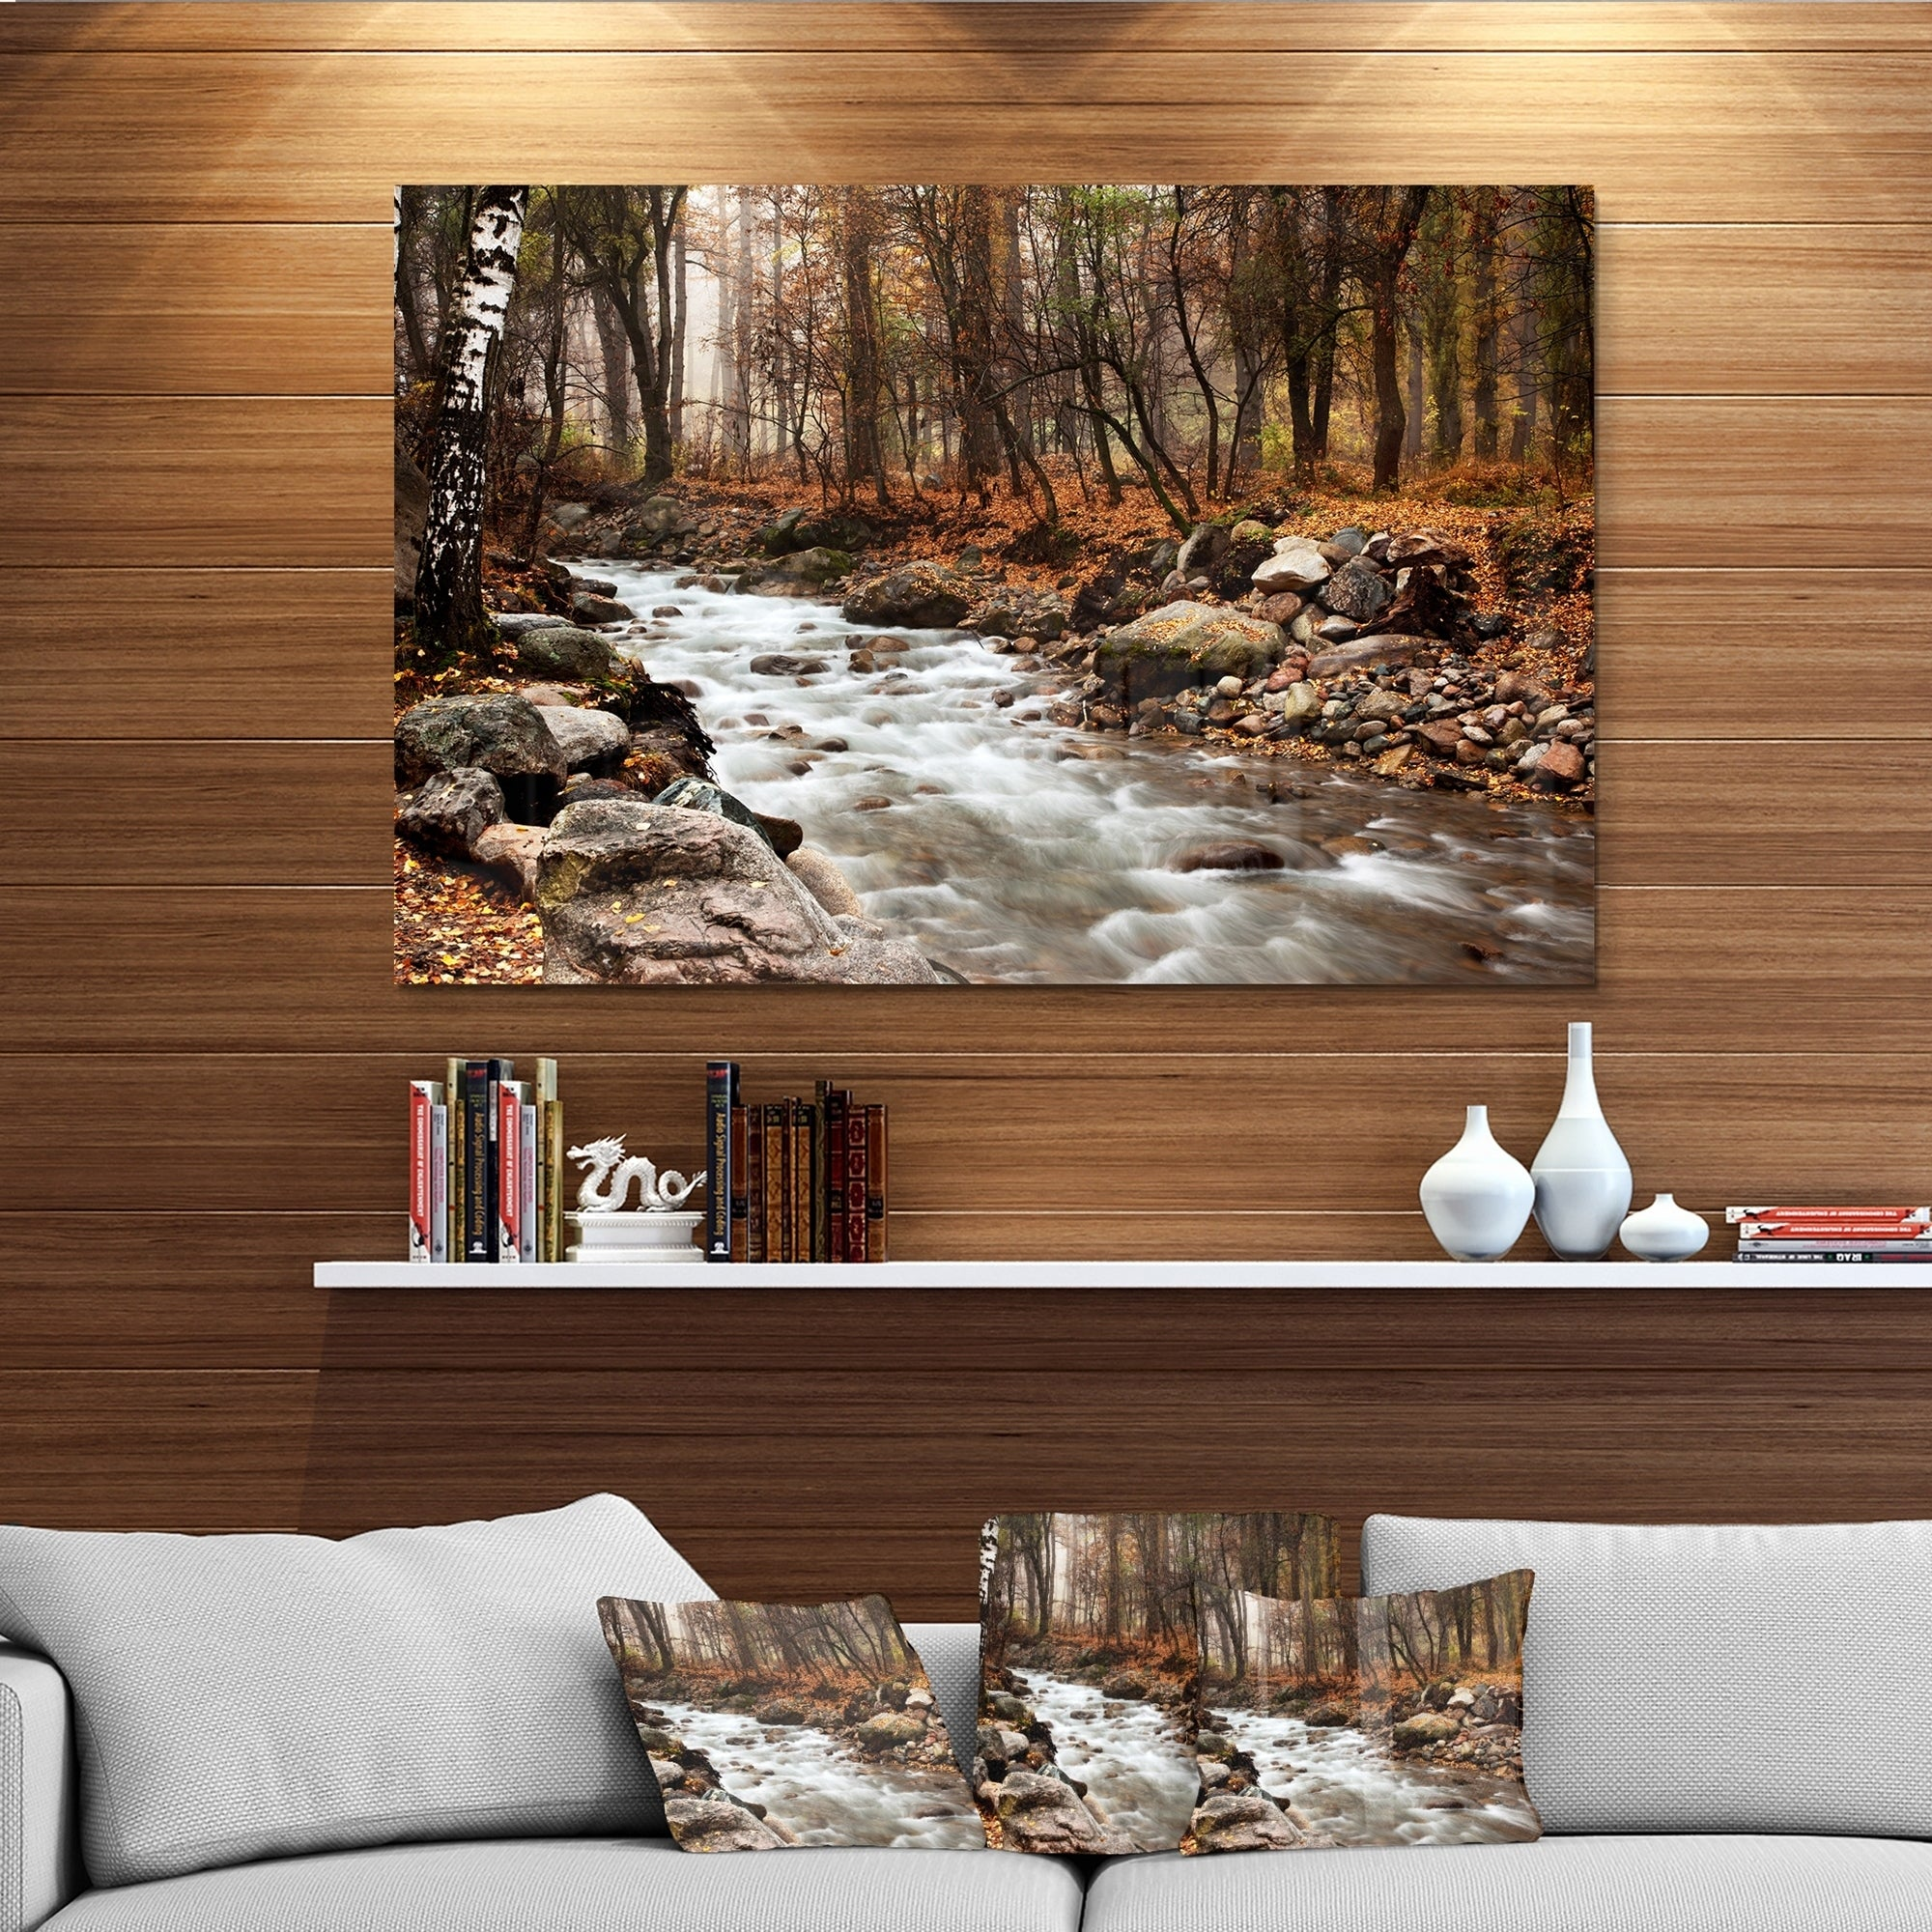 Stream In Autumn Forest Landscape Photography Glossy Metal Wall Art Overstock 12780325